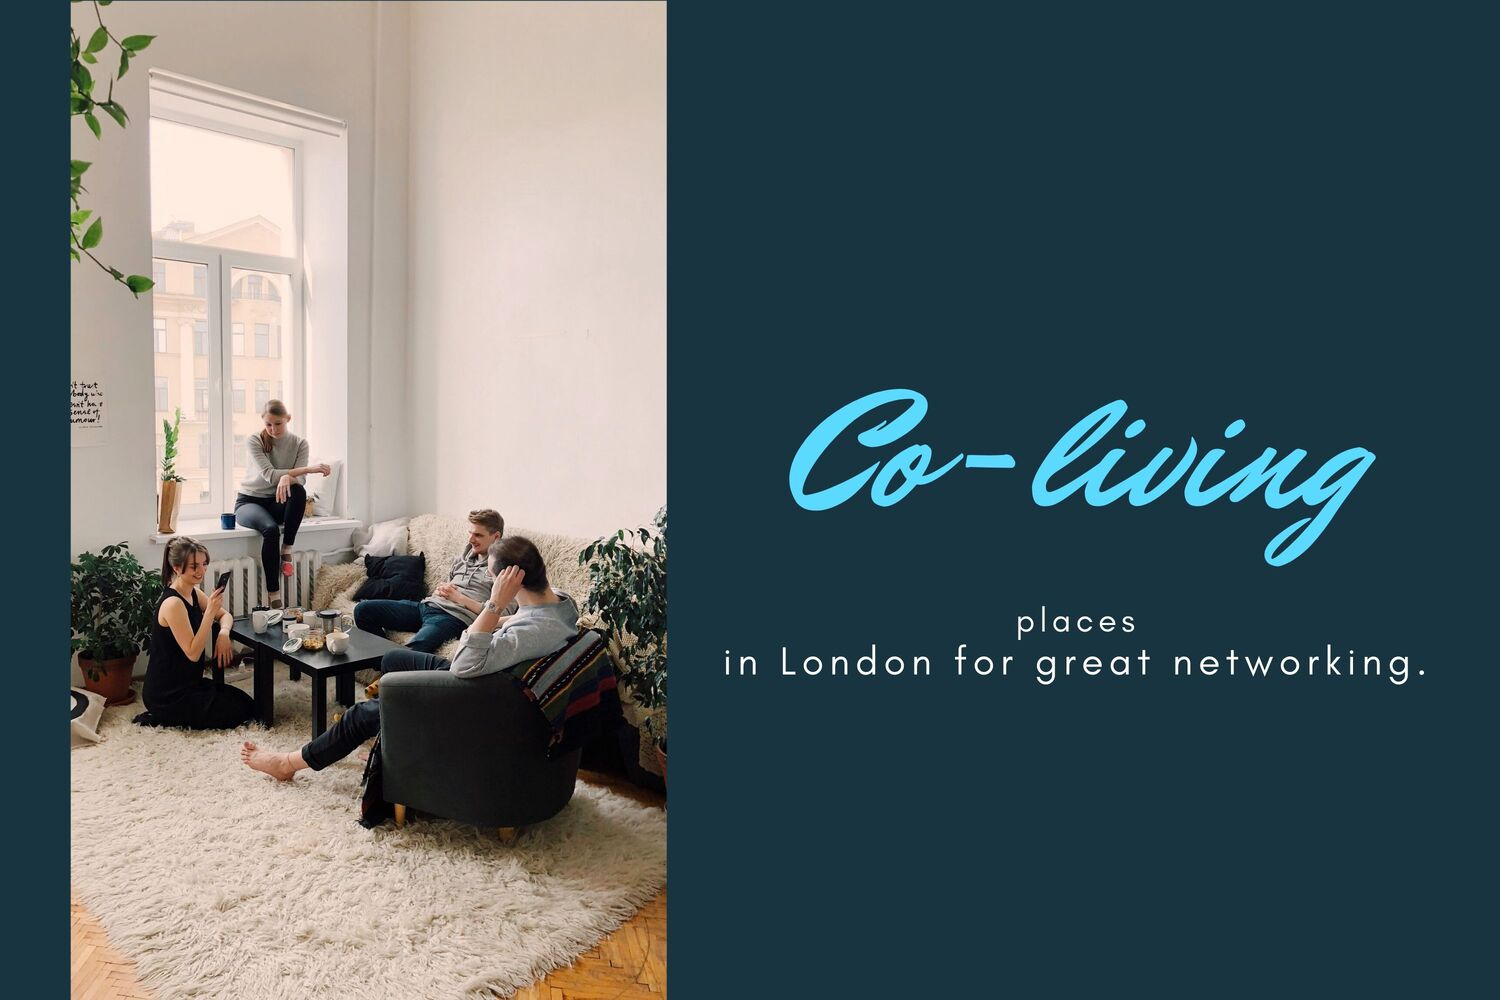 Vonder - Co-living places in London